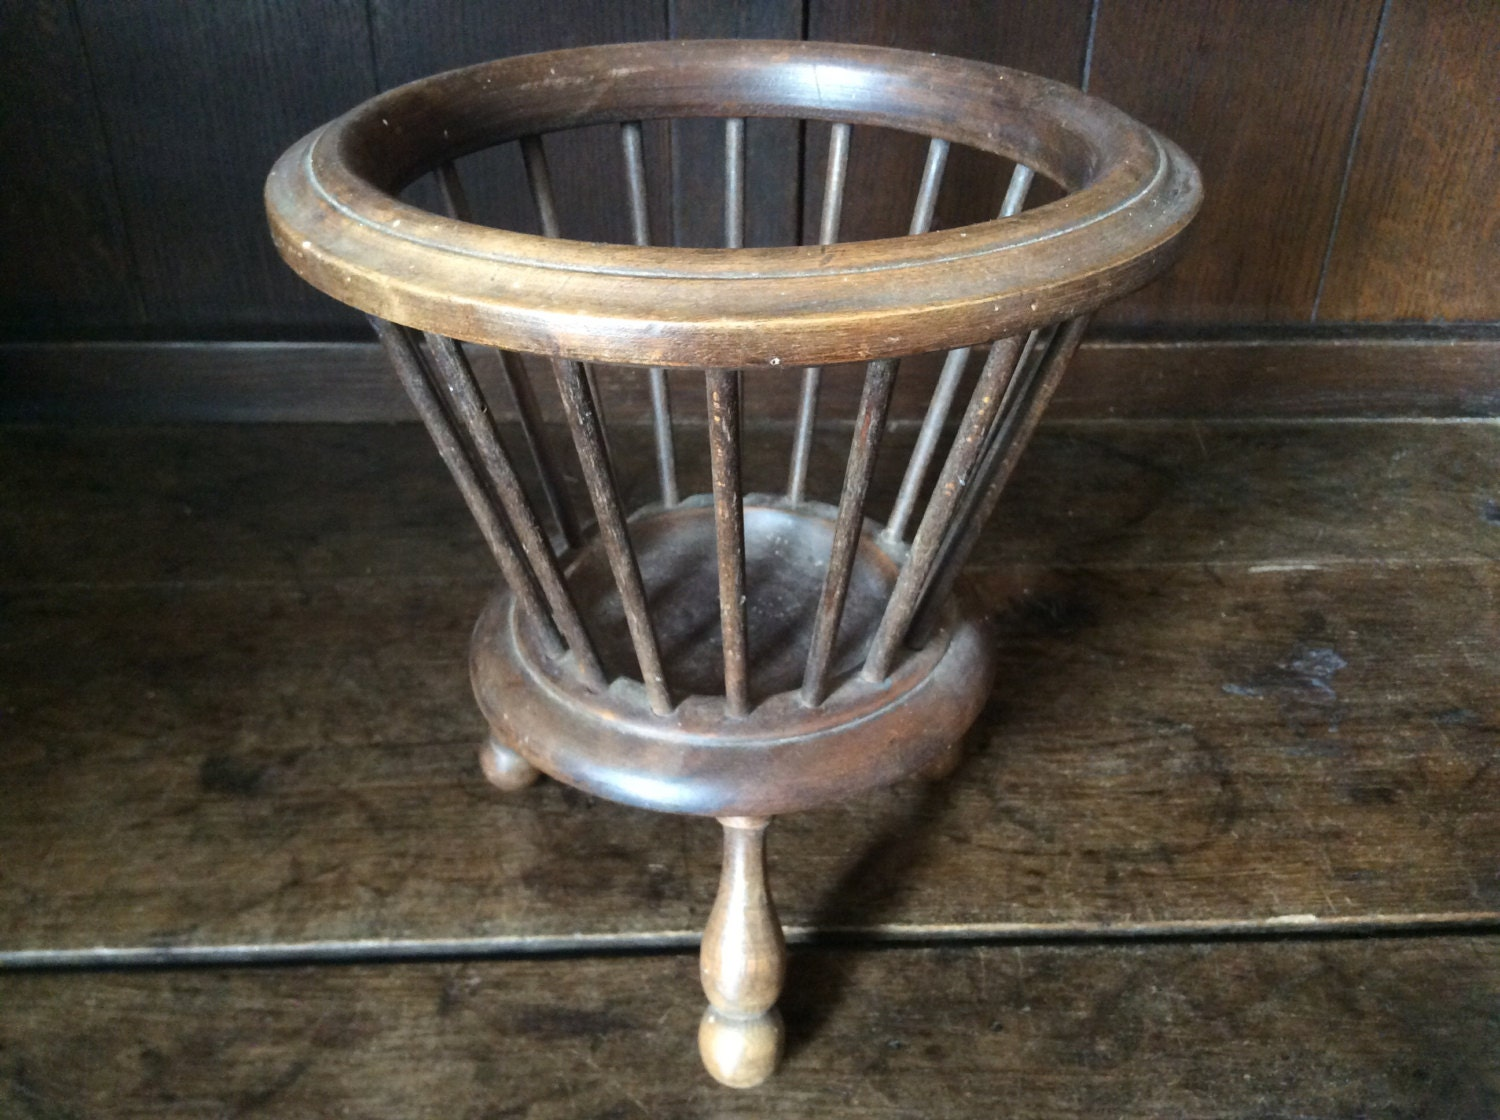 Wooden Knitting Wool Holder : Vintage french wooden knitting wool holder basket plant